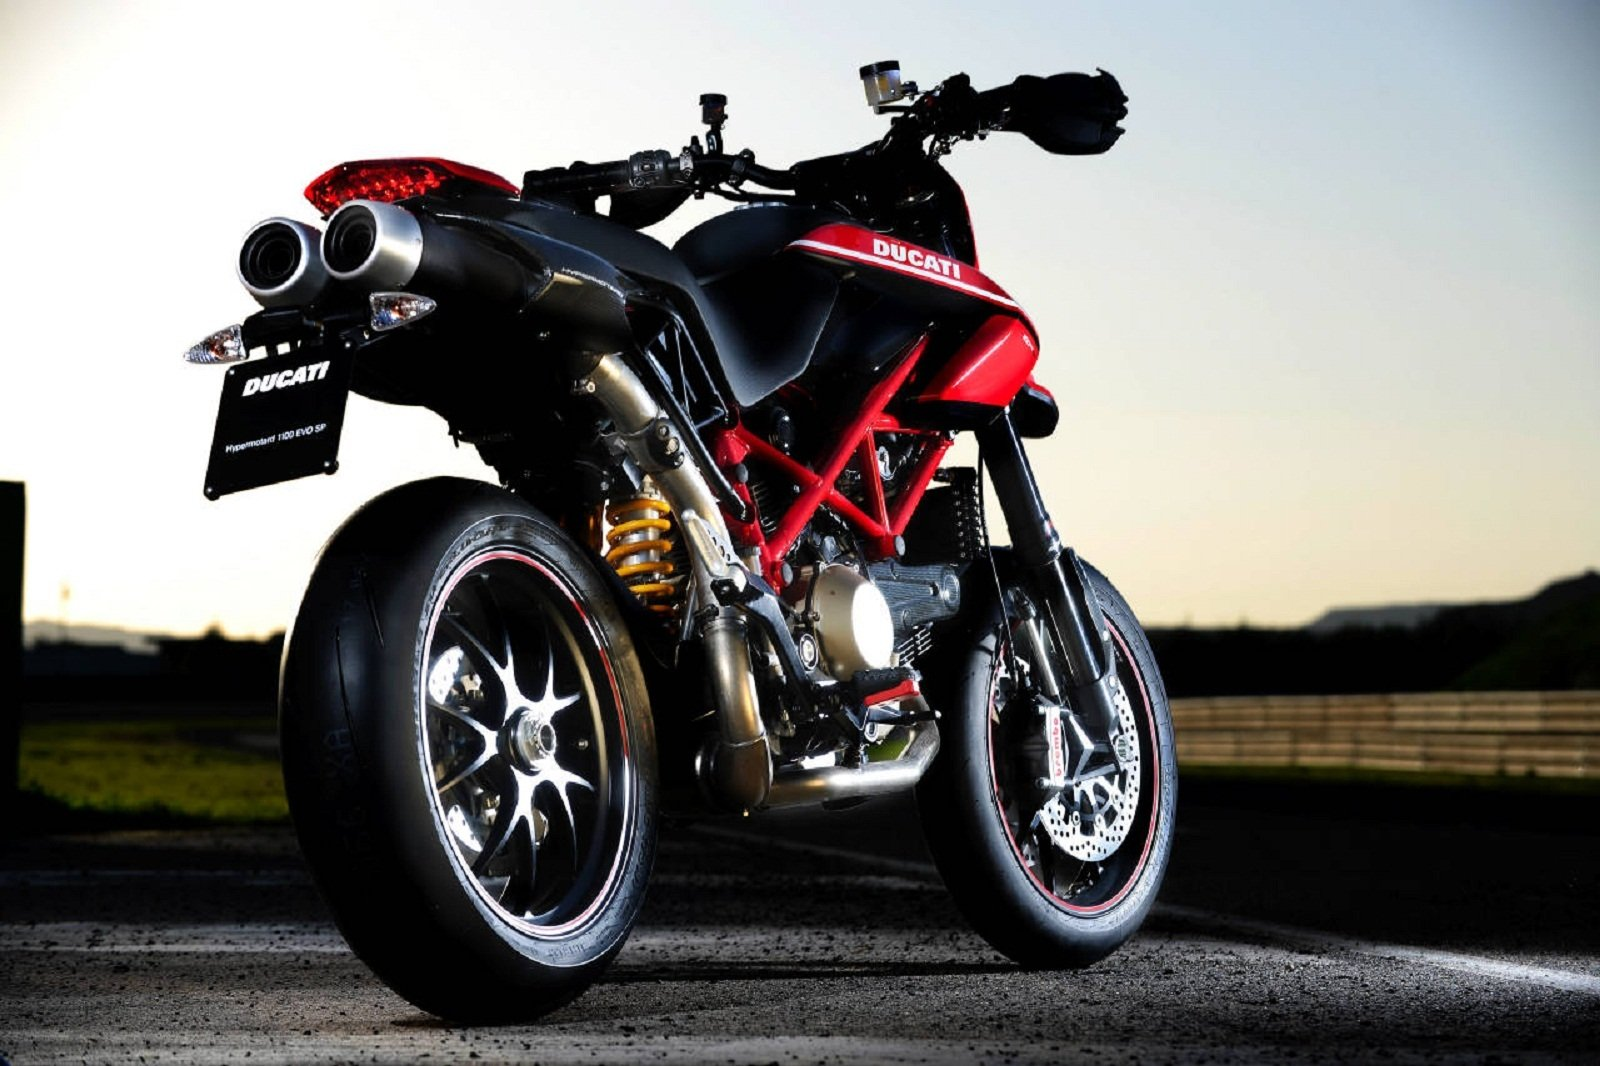 2012 ducati hypermotard 1100 evo sp picture 439750 motorcycle review top speed. Black Bedroom Furniture Sets. Home Design Ideas